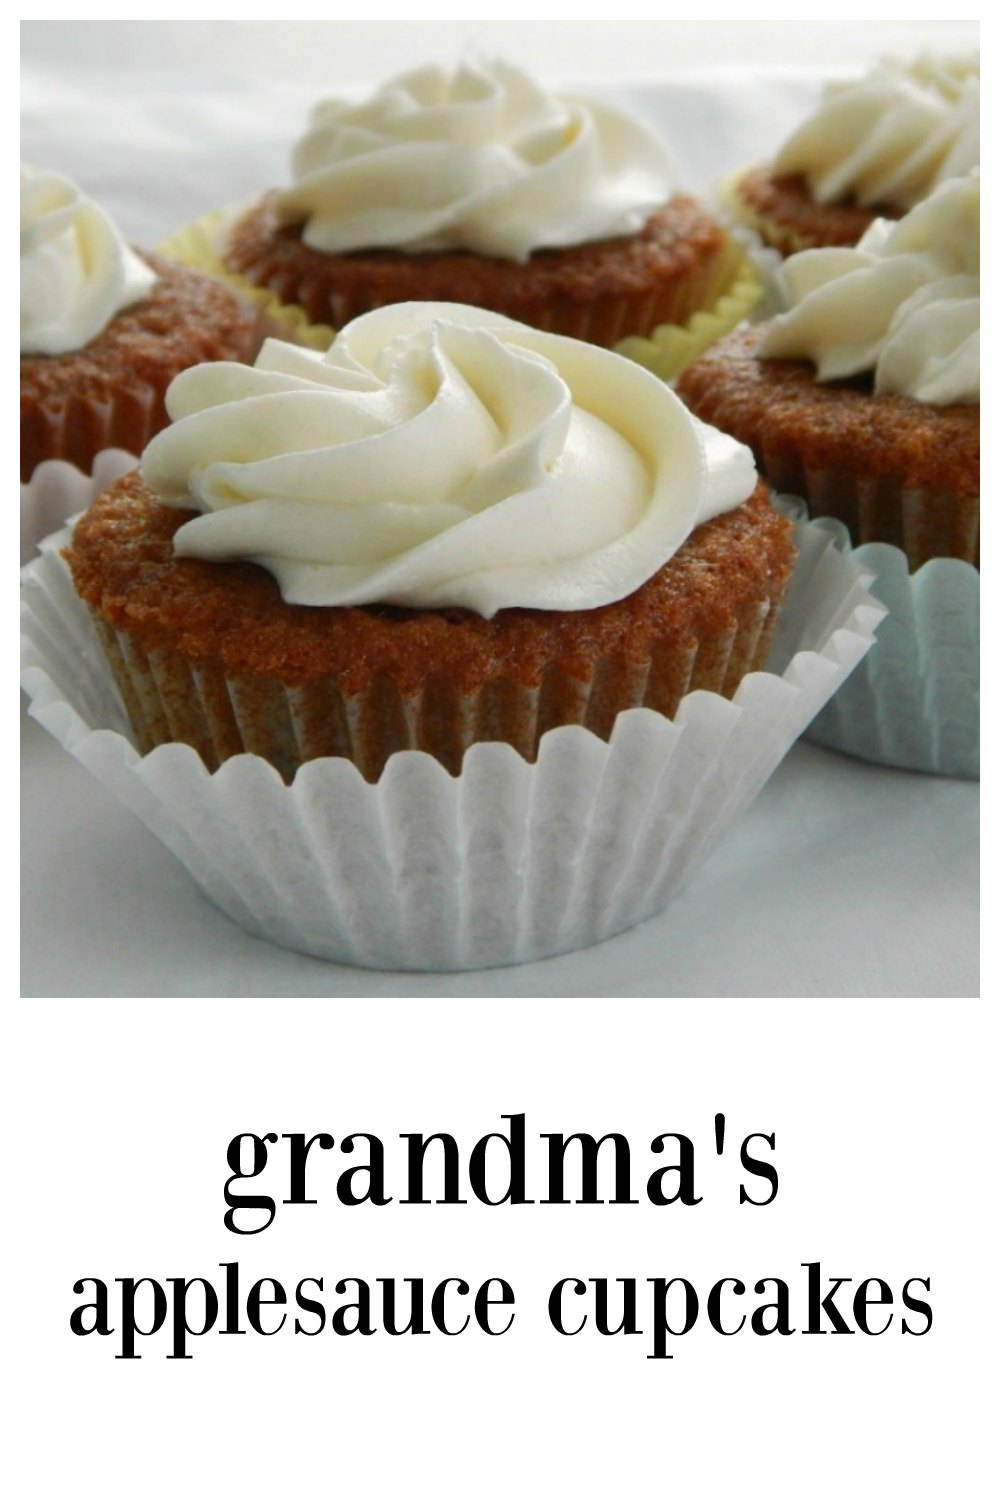 Grandmas Applesauce Cupcakes are an old recipe and still one of the best cupcakes you'll ever eat! Perfectly good with or without frosting. #ApplesauceCupcakes #GrandmasApplesauceCupcakes #OldFashionedApplesauceCupcakes